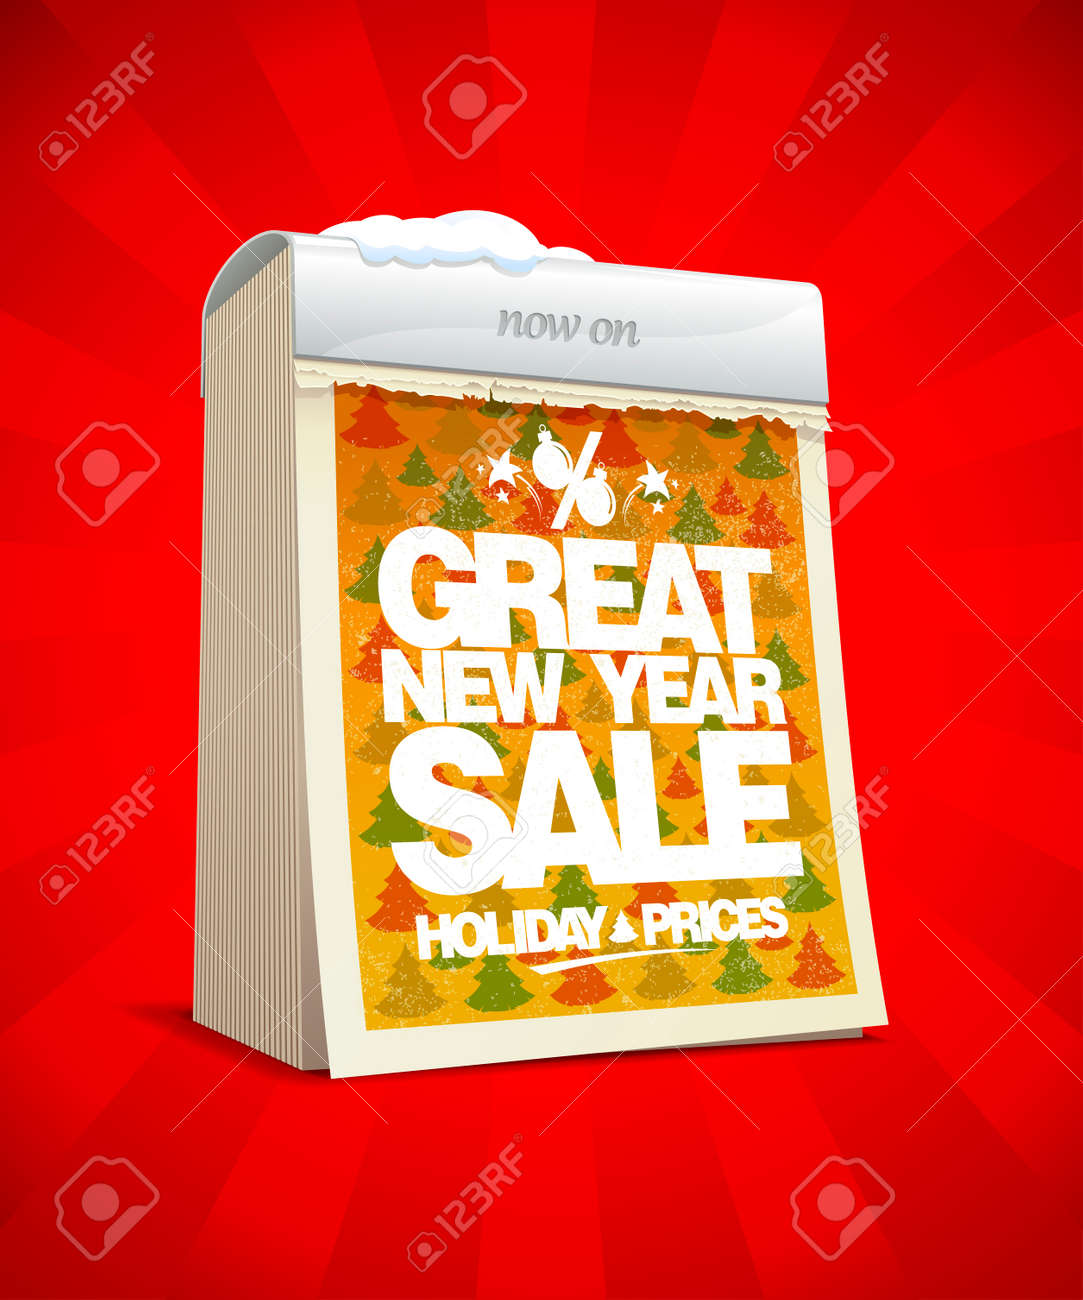 great new year sale banner tear off calendar winter holiday prices concept stock